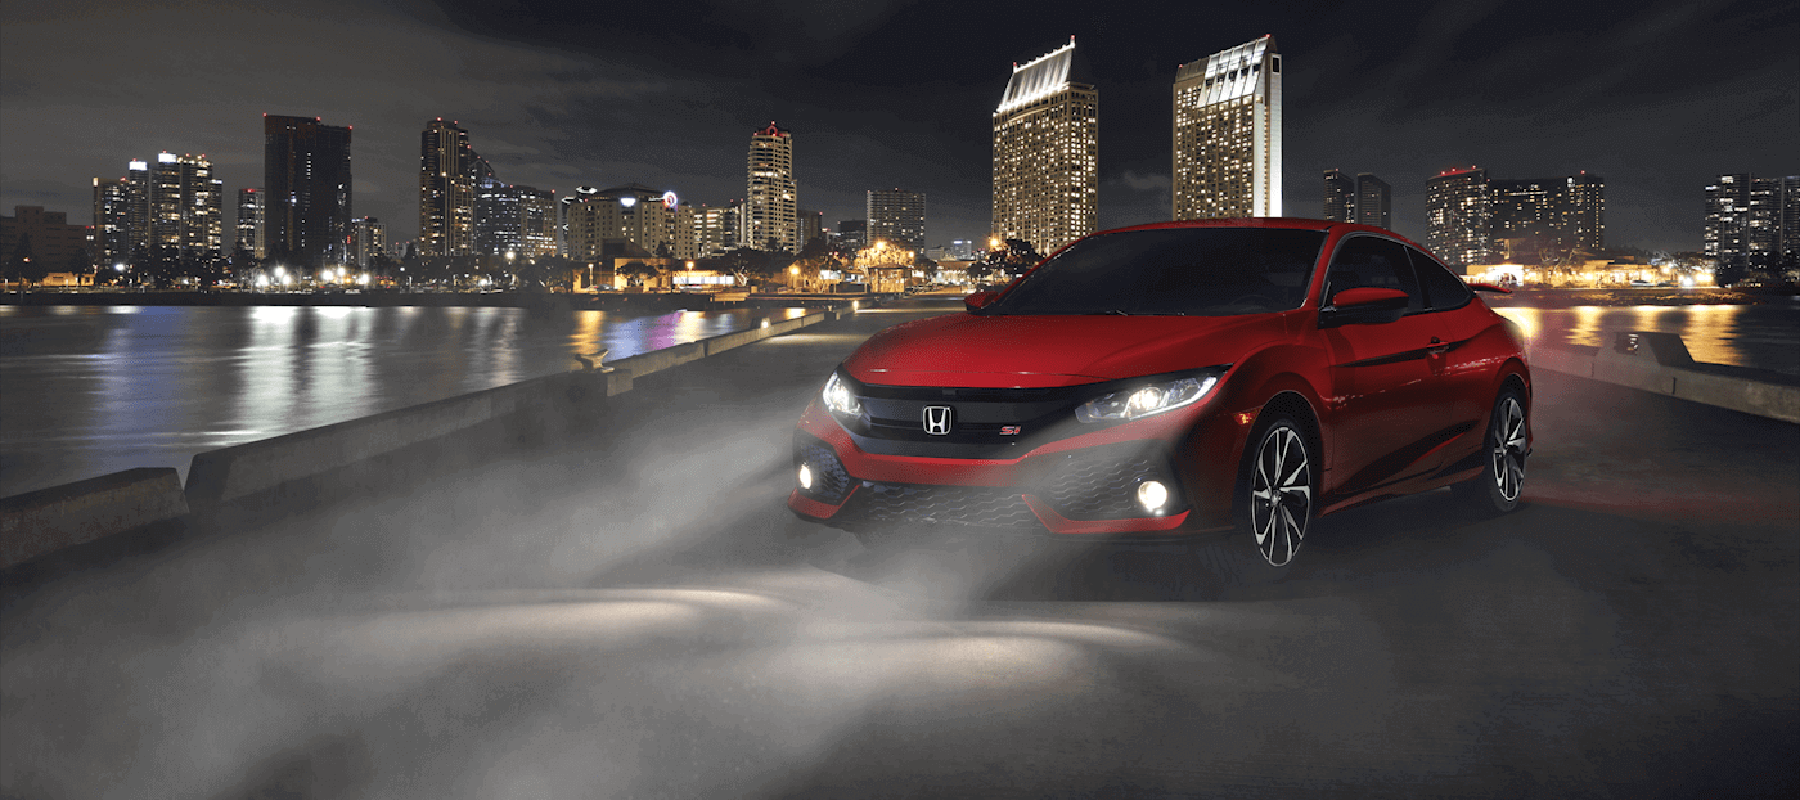 2017 Honda Civic Si Night